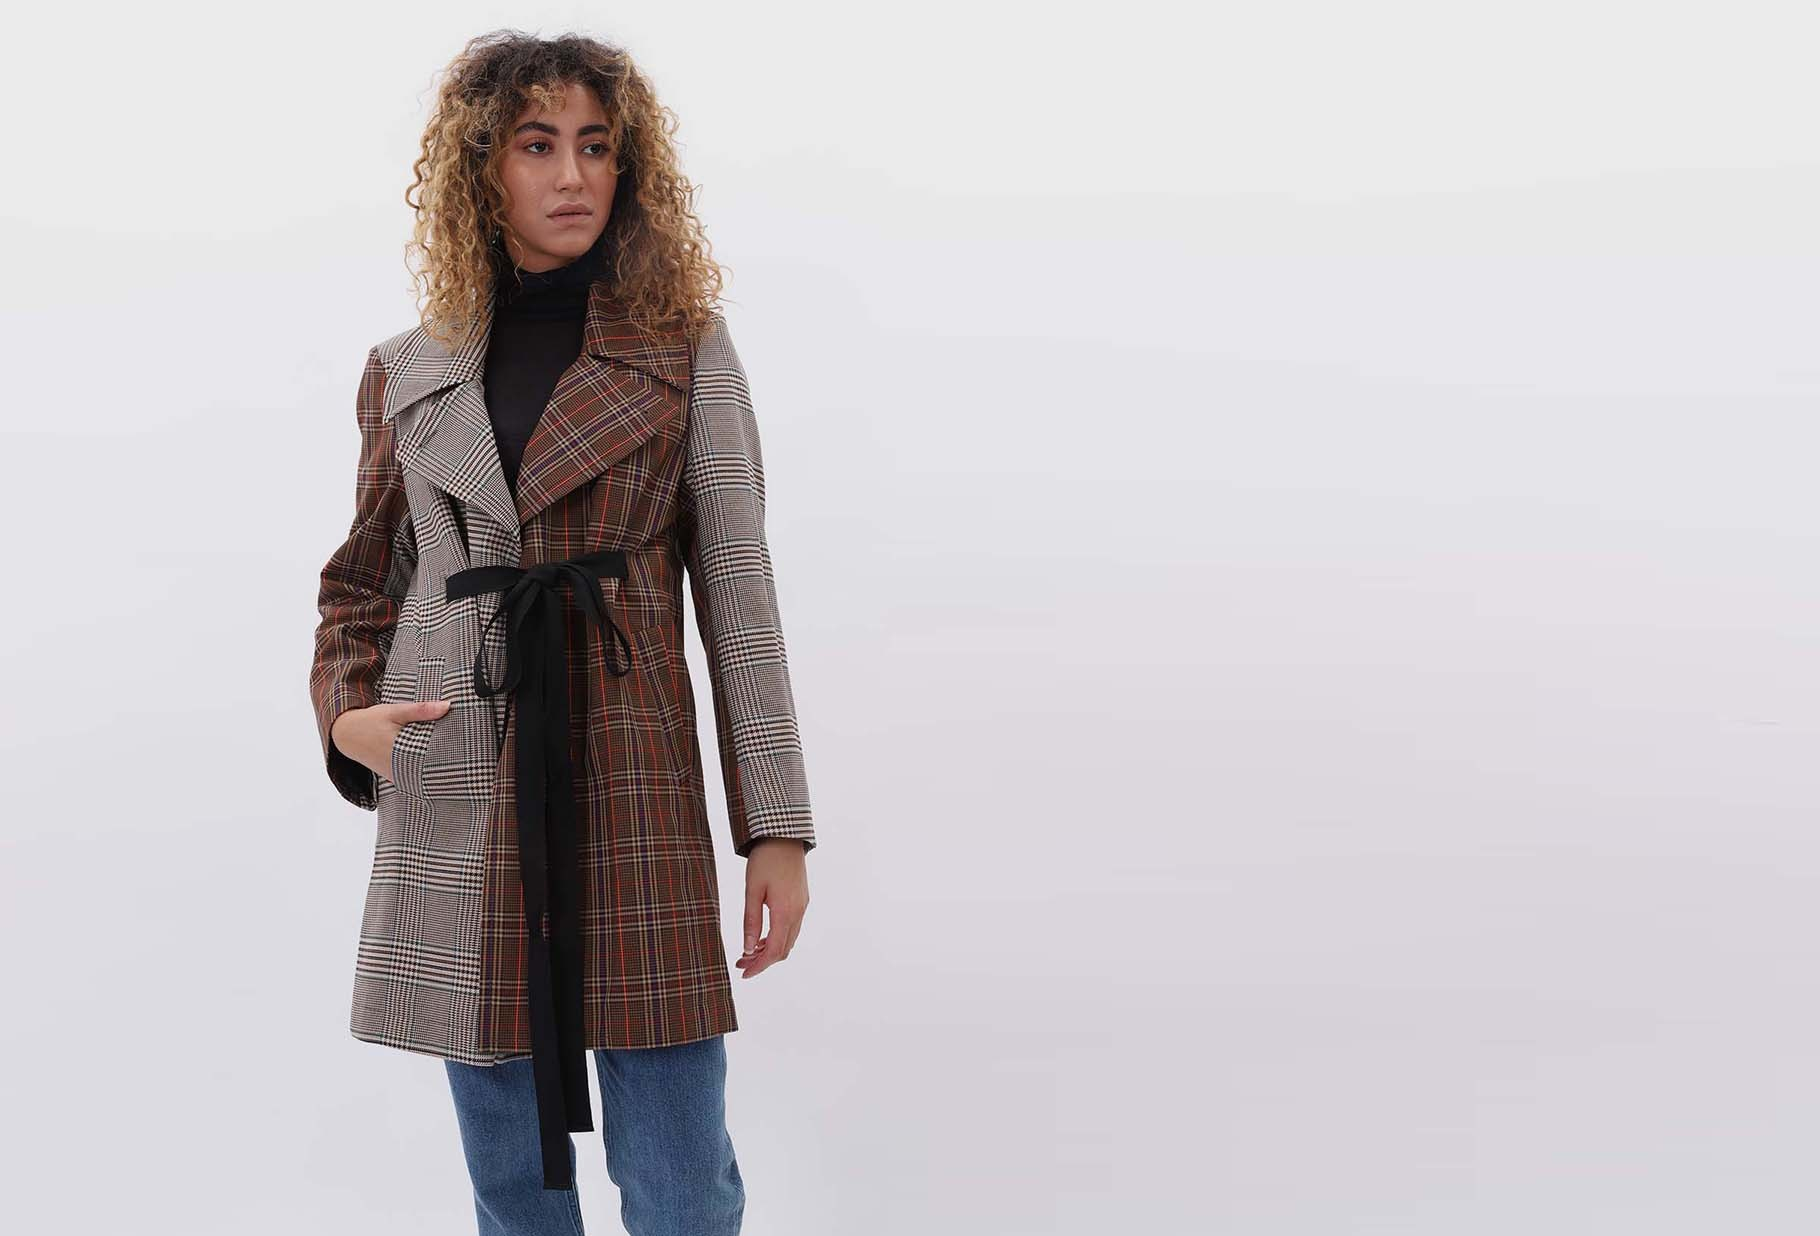 MM6 MAISON MARGIELA FOR WOMAN / Tweed patchwork coat Brown